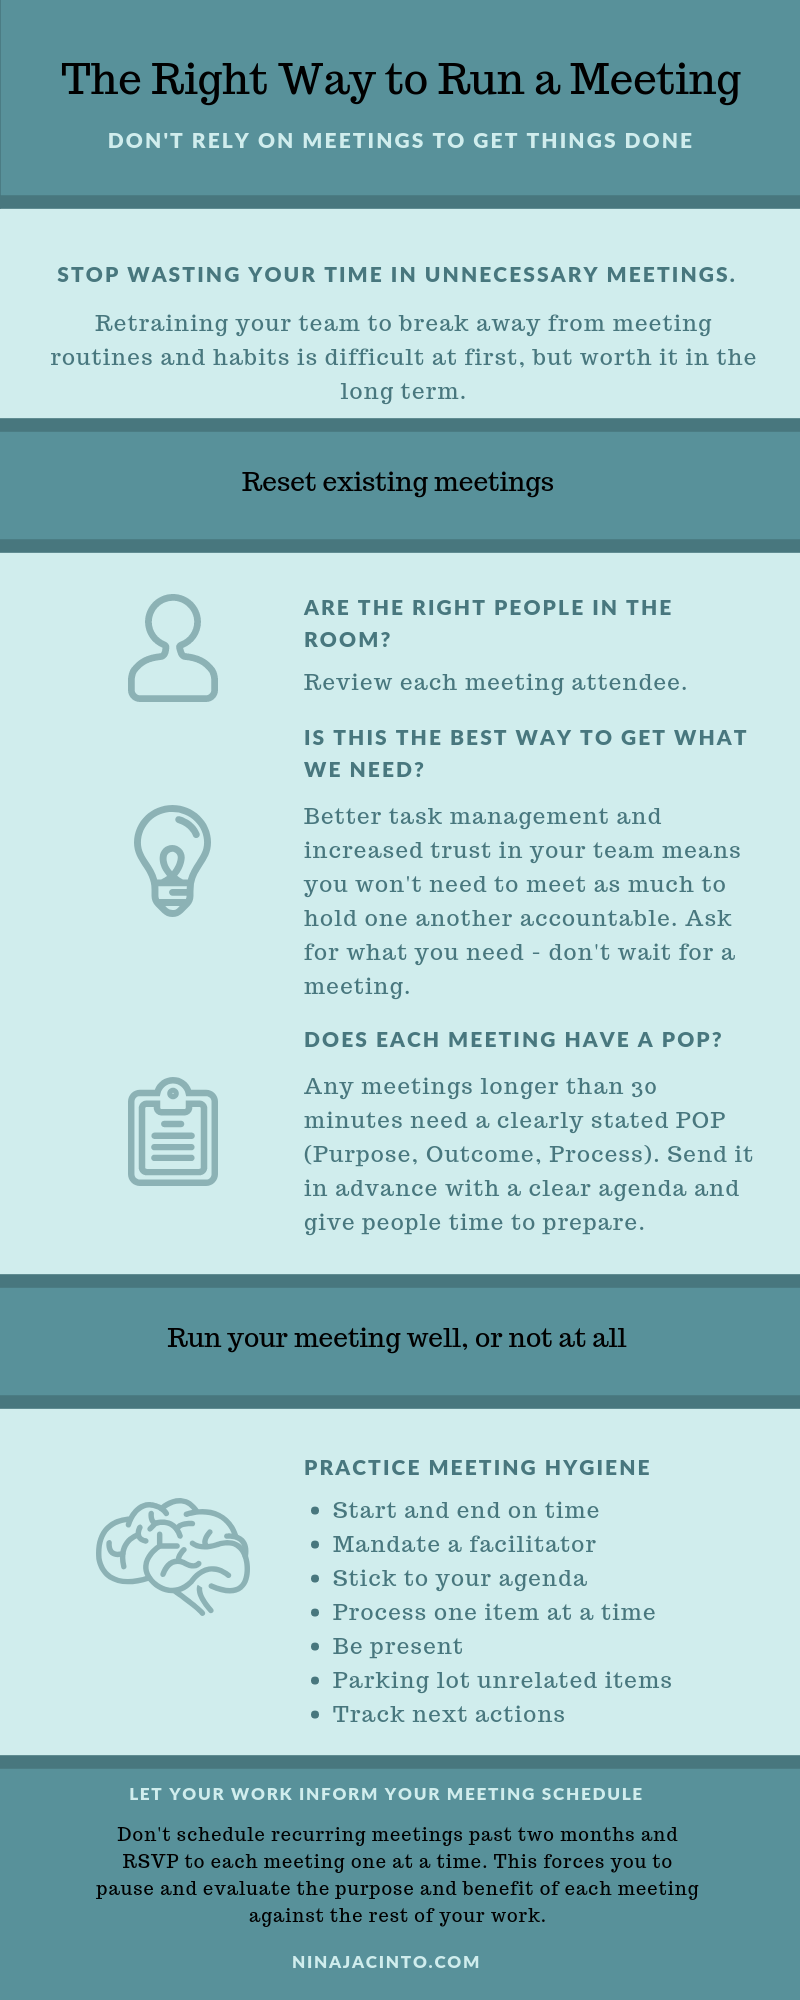 Meeting Hygiene infographic.png